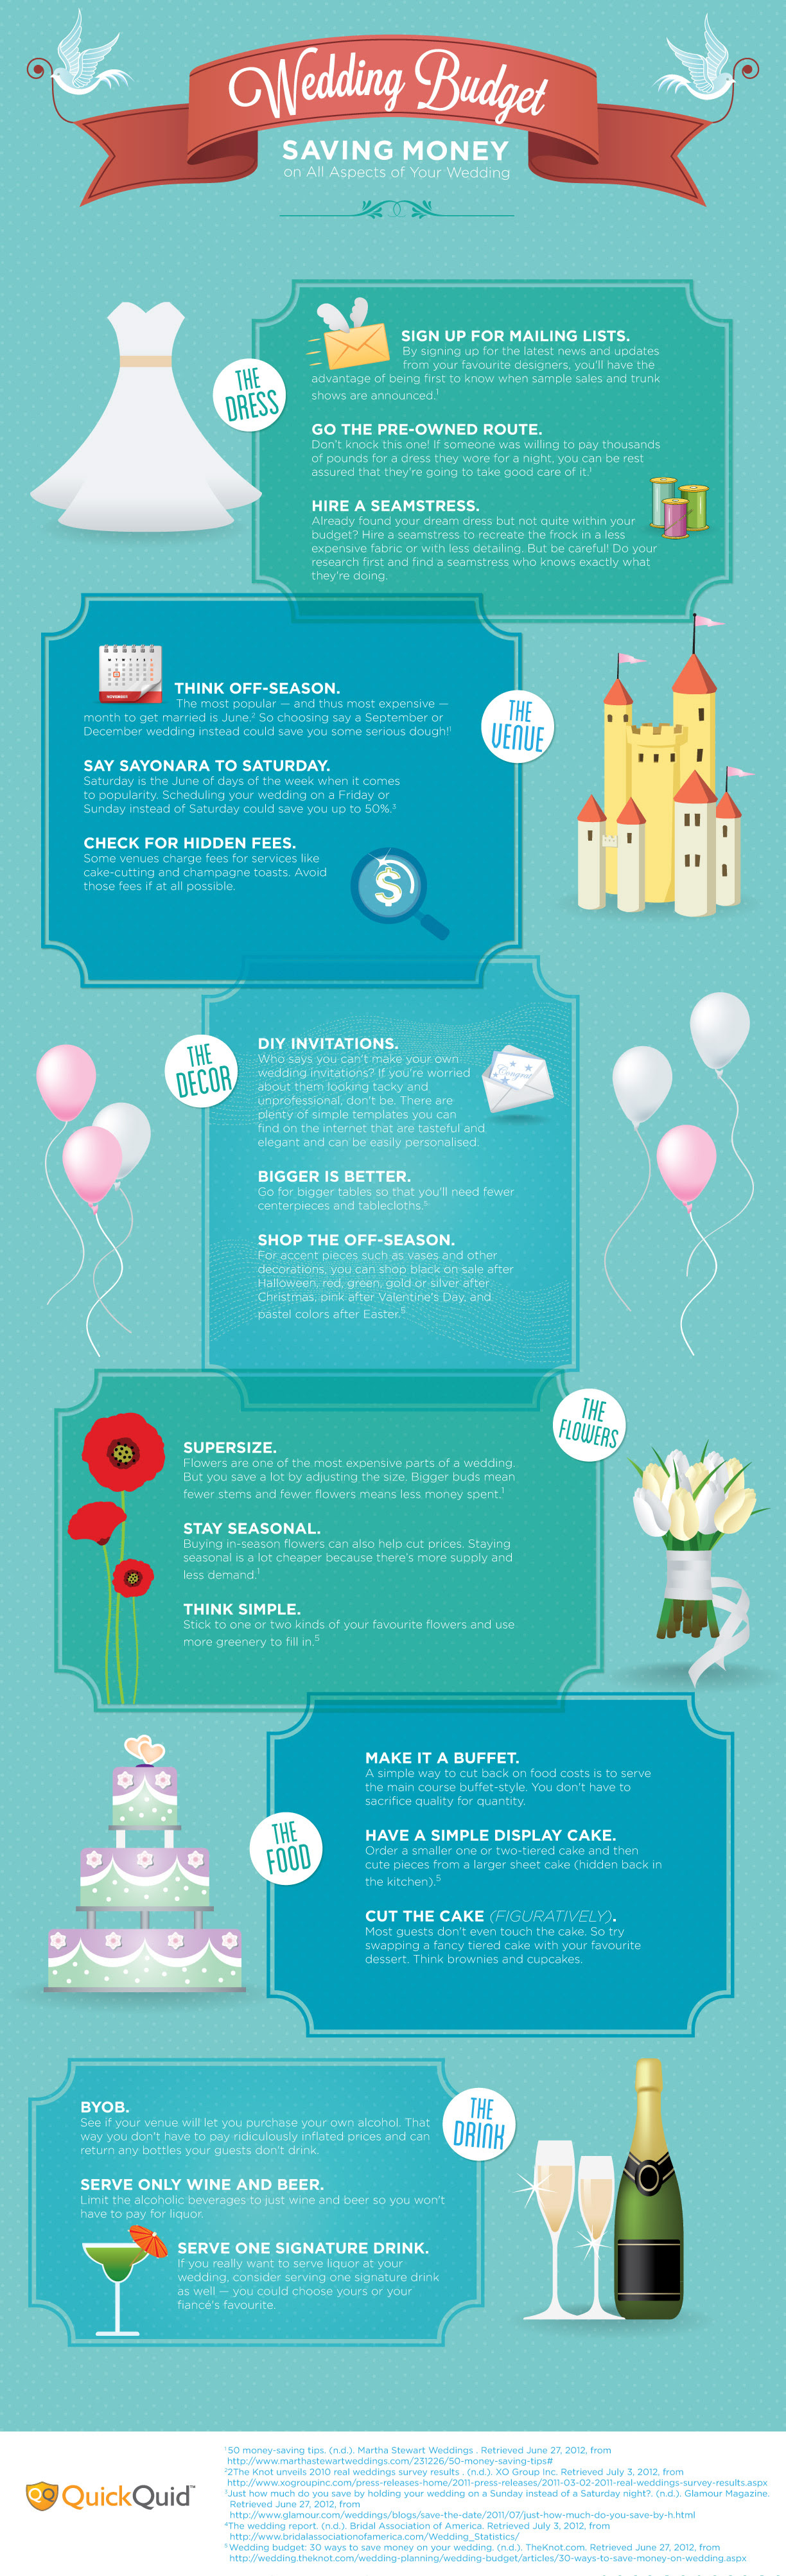 Infographic: Wedding Budget: Saving Money #infographic